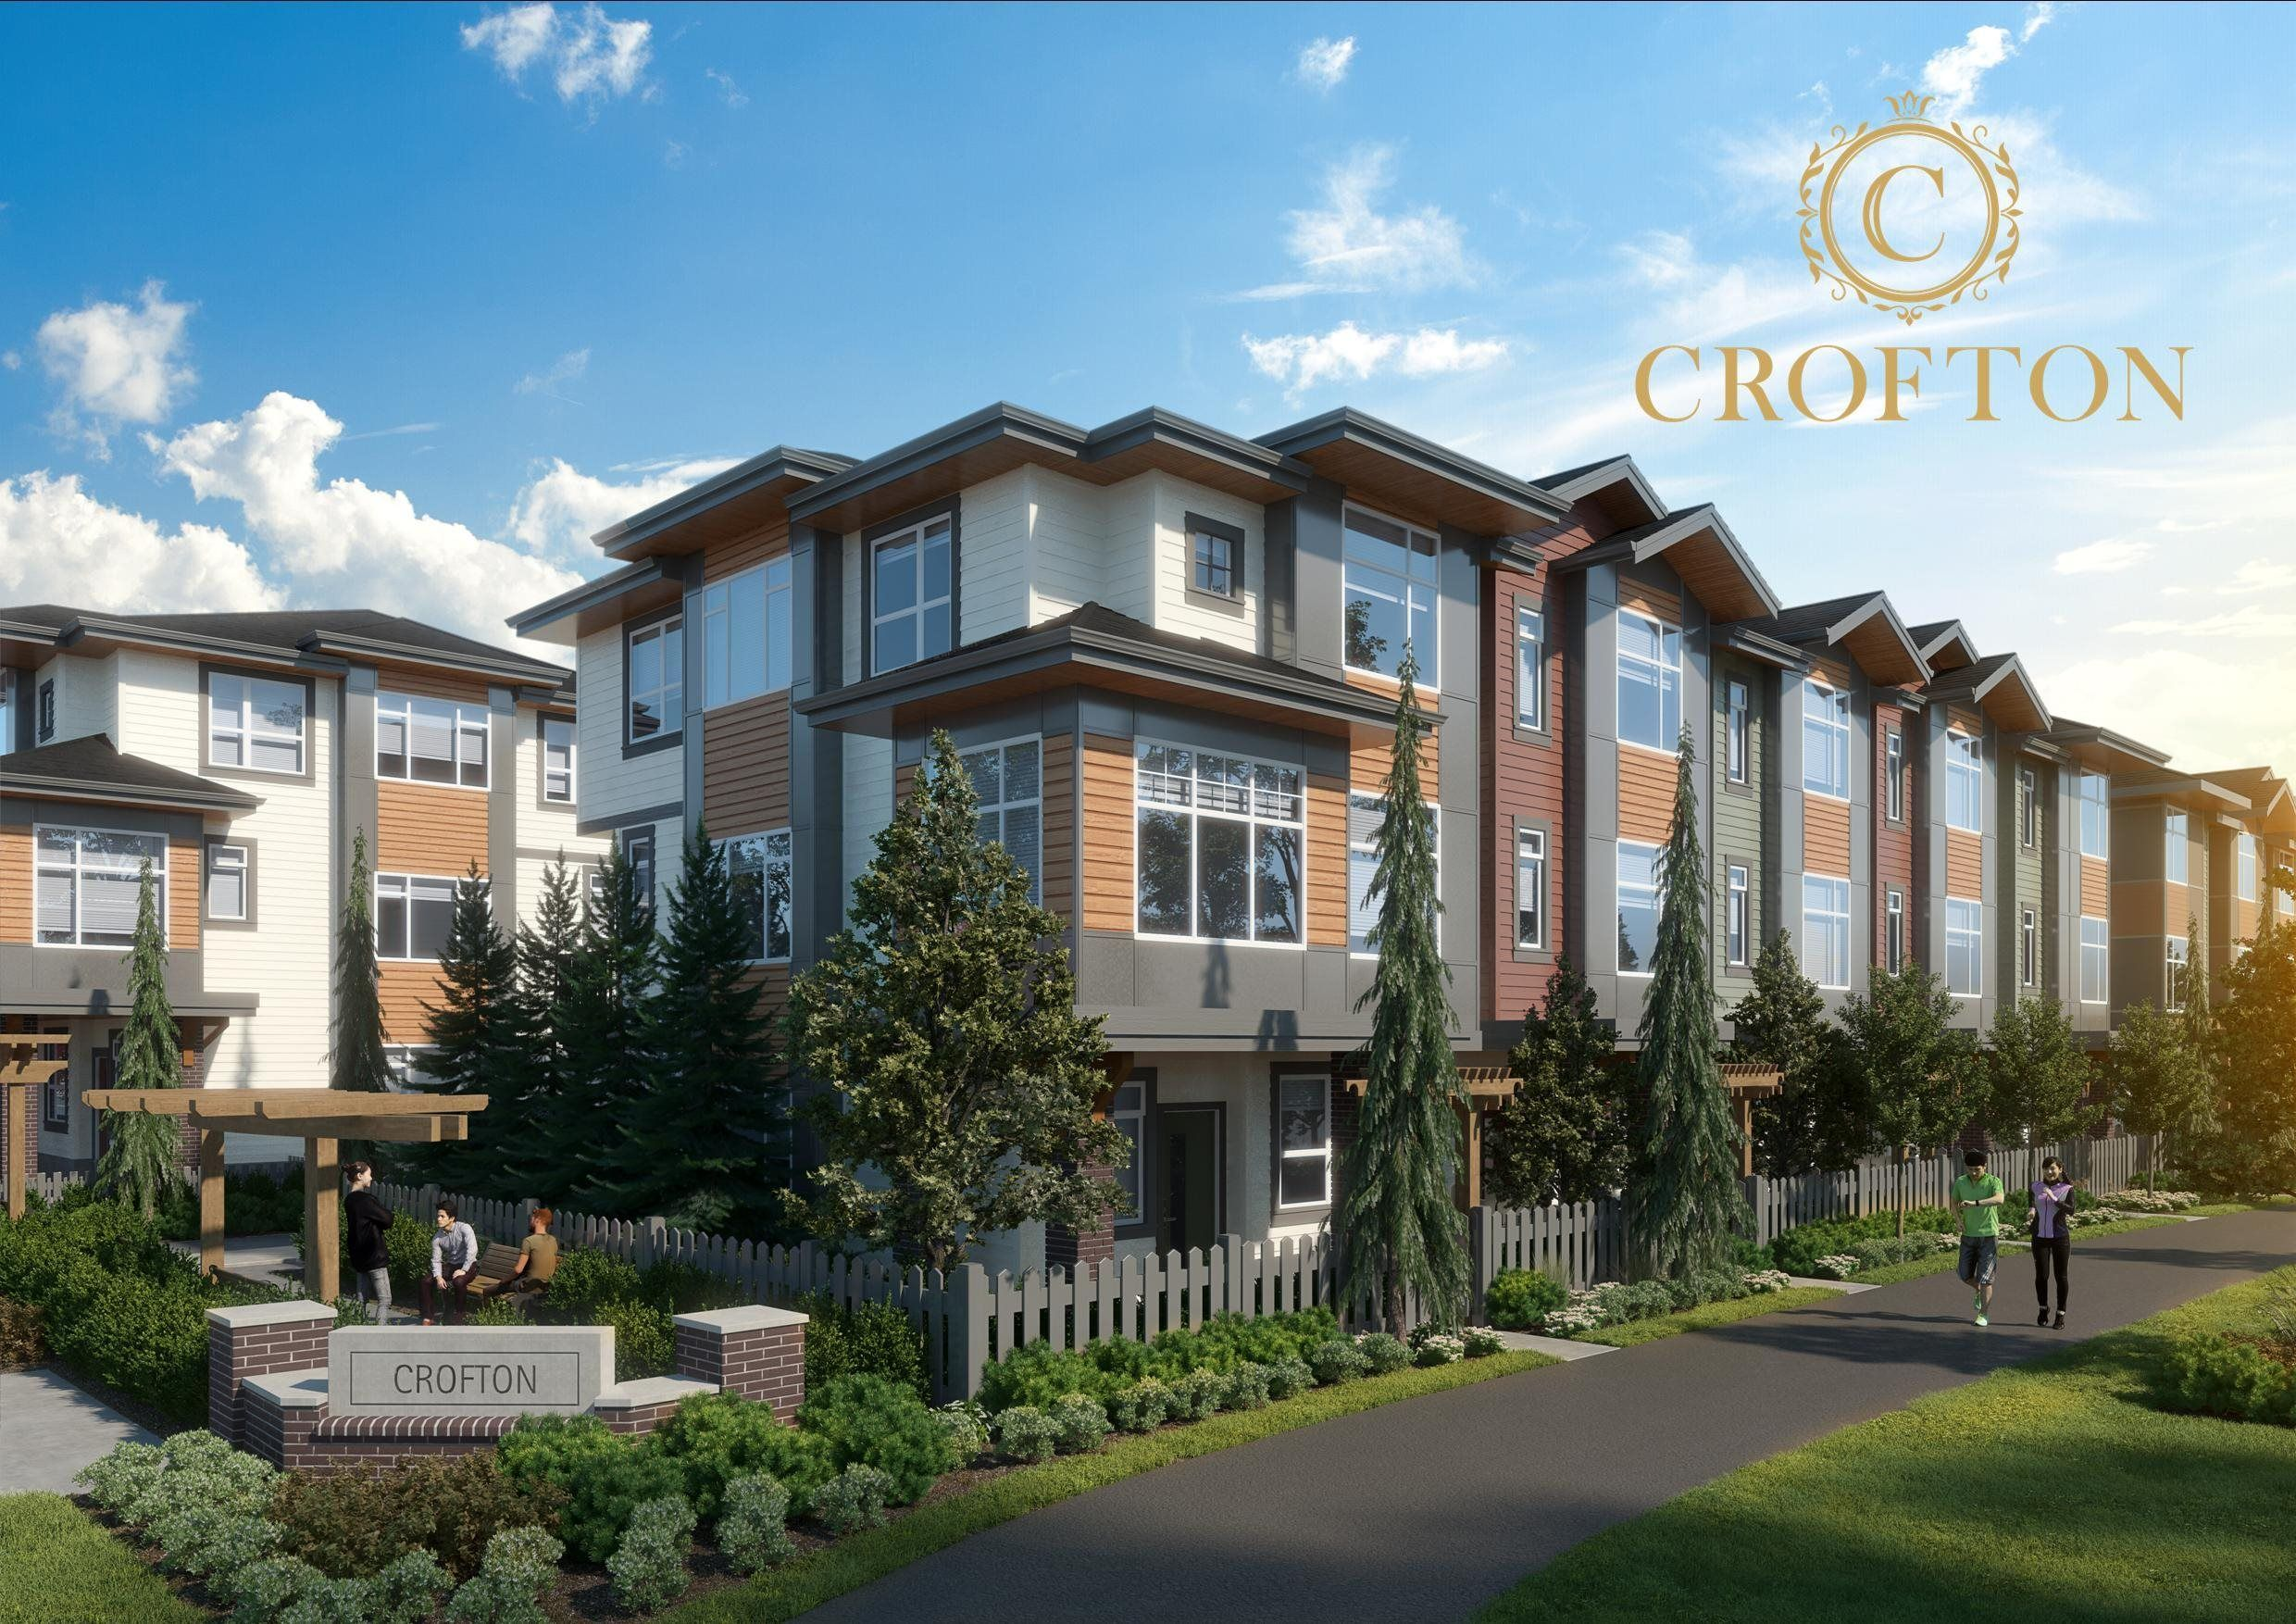 """Main Photo: 36 20763 76 Avenue in Langley: Willoughby Heights Townhouse for sale in """"CROFTON"""" : MLS®# R2620975"""